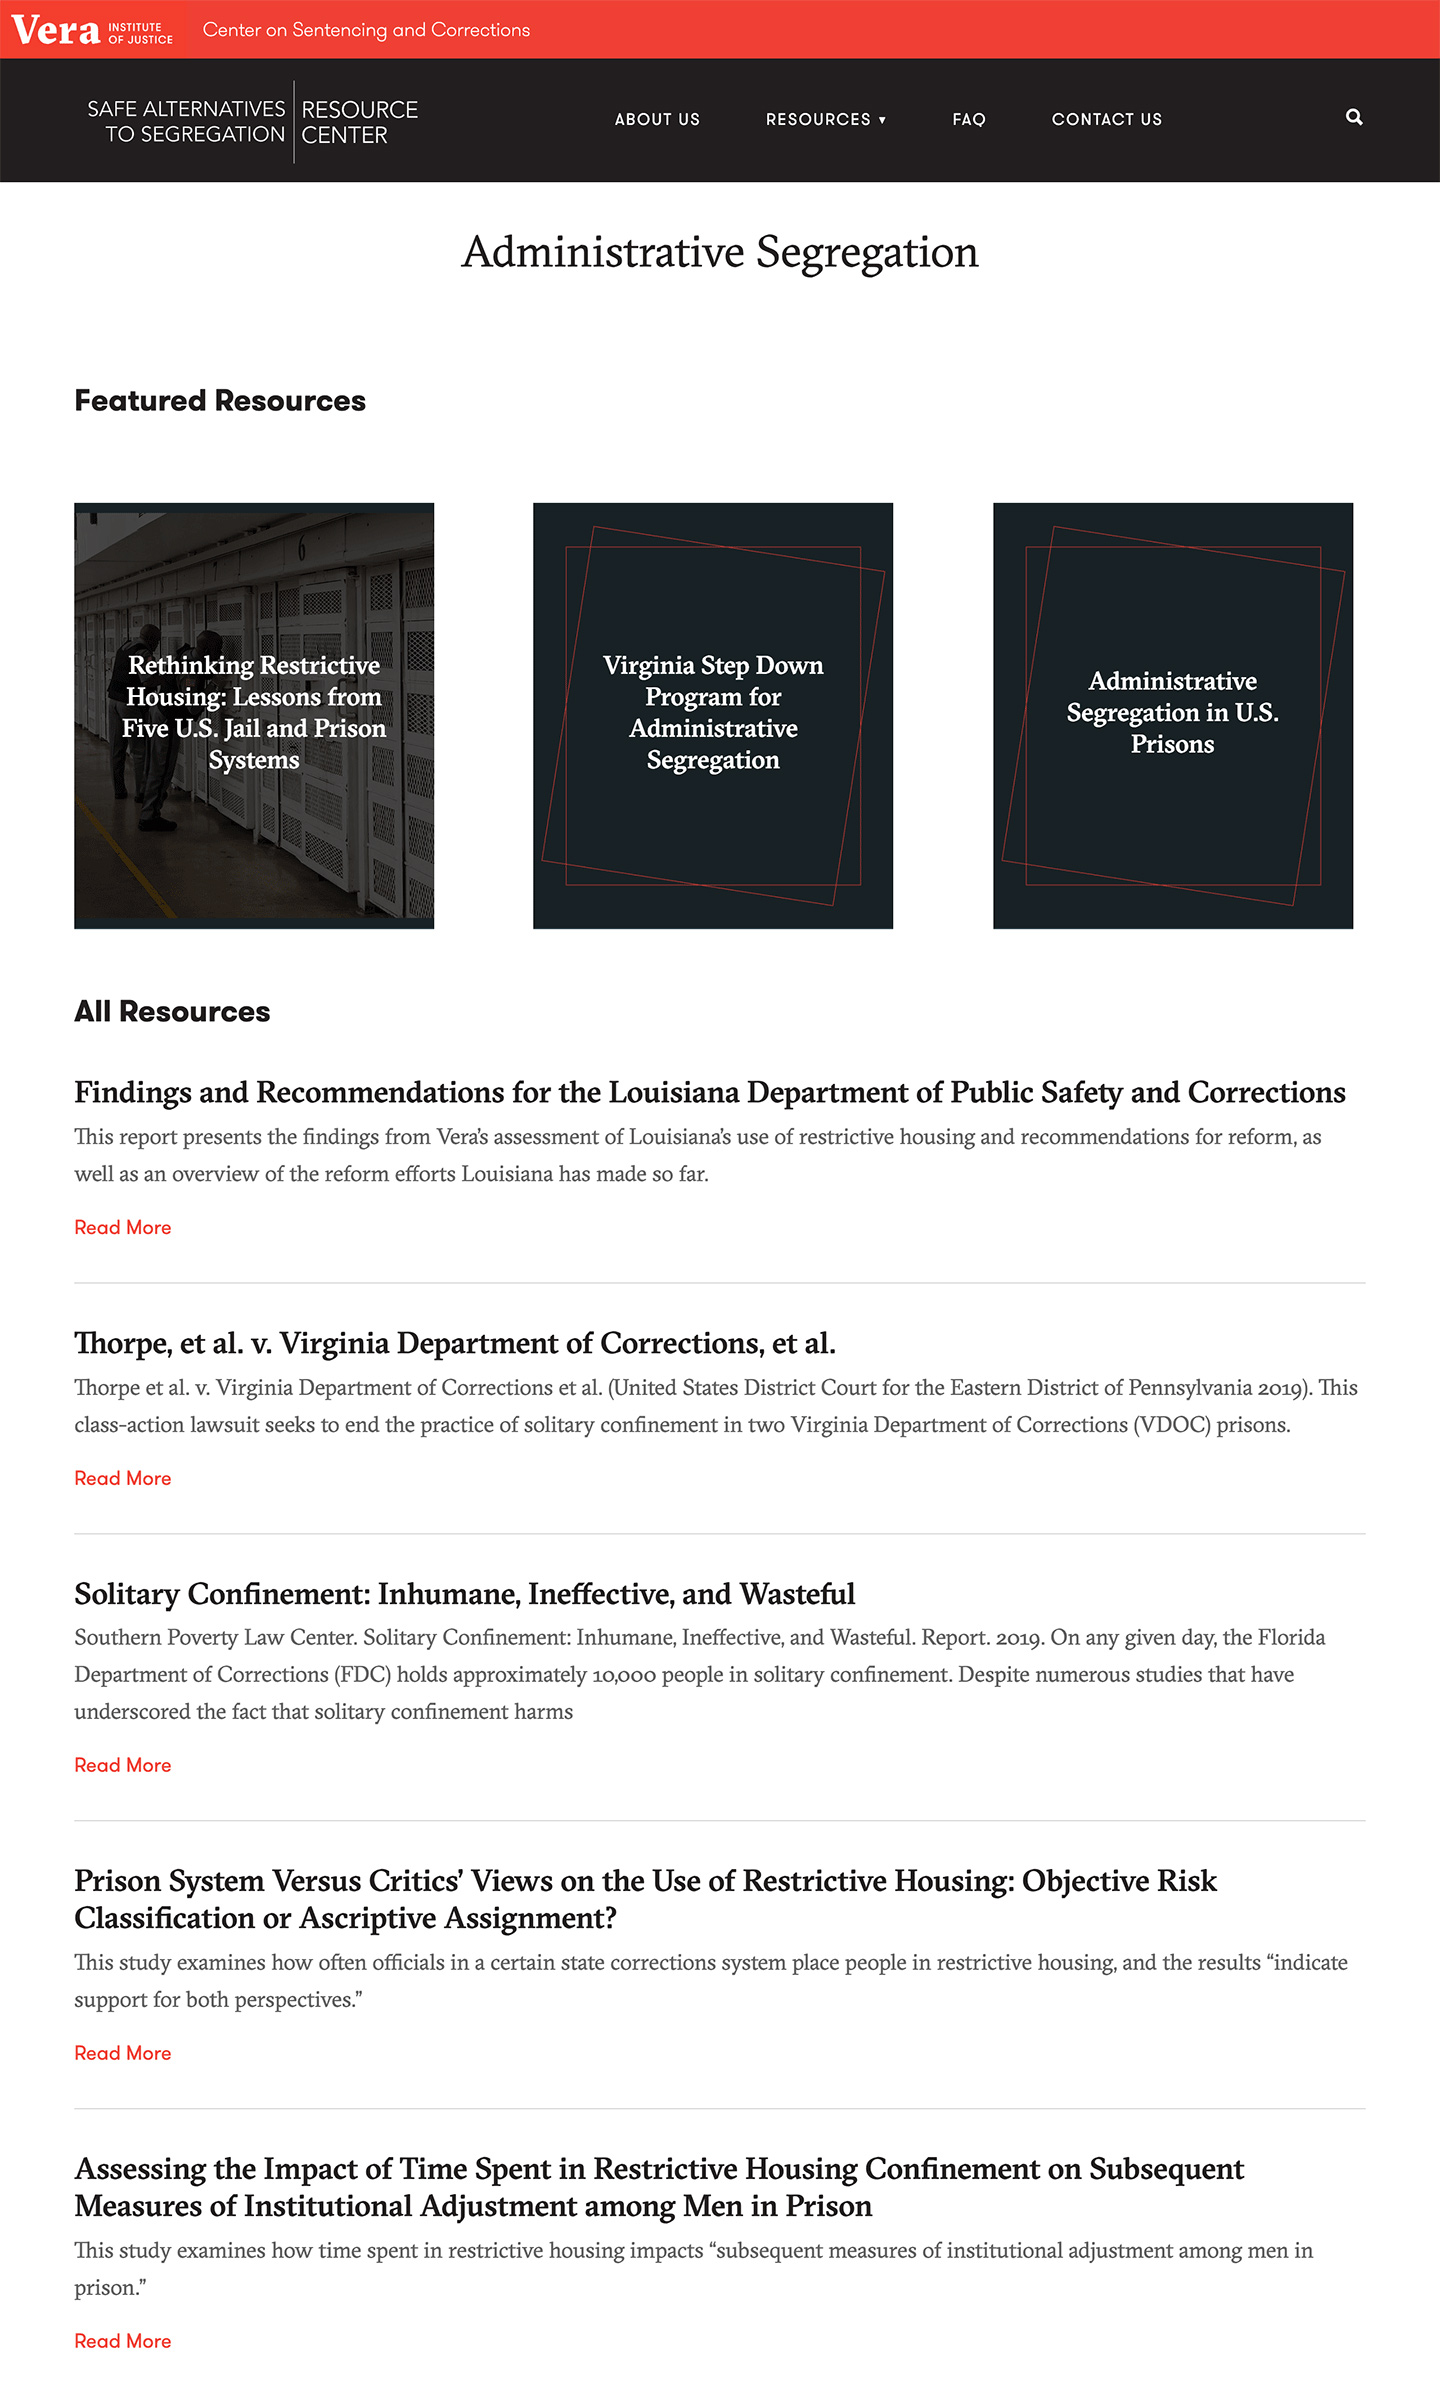 Vera Institute of Justice | Safe Alternatives to Segregation Resource Center: Vera SASRC New Branded Resource Type